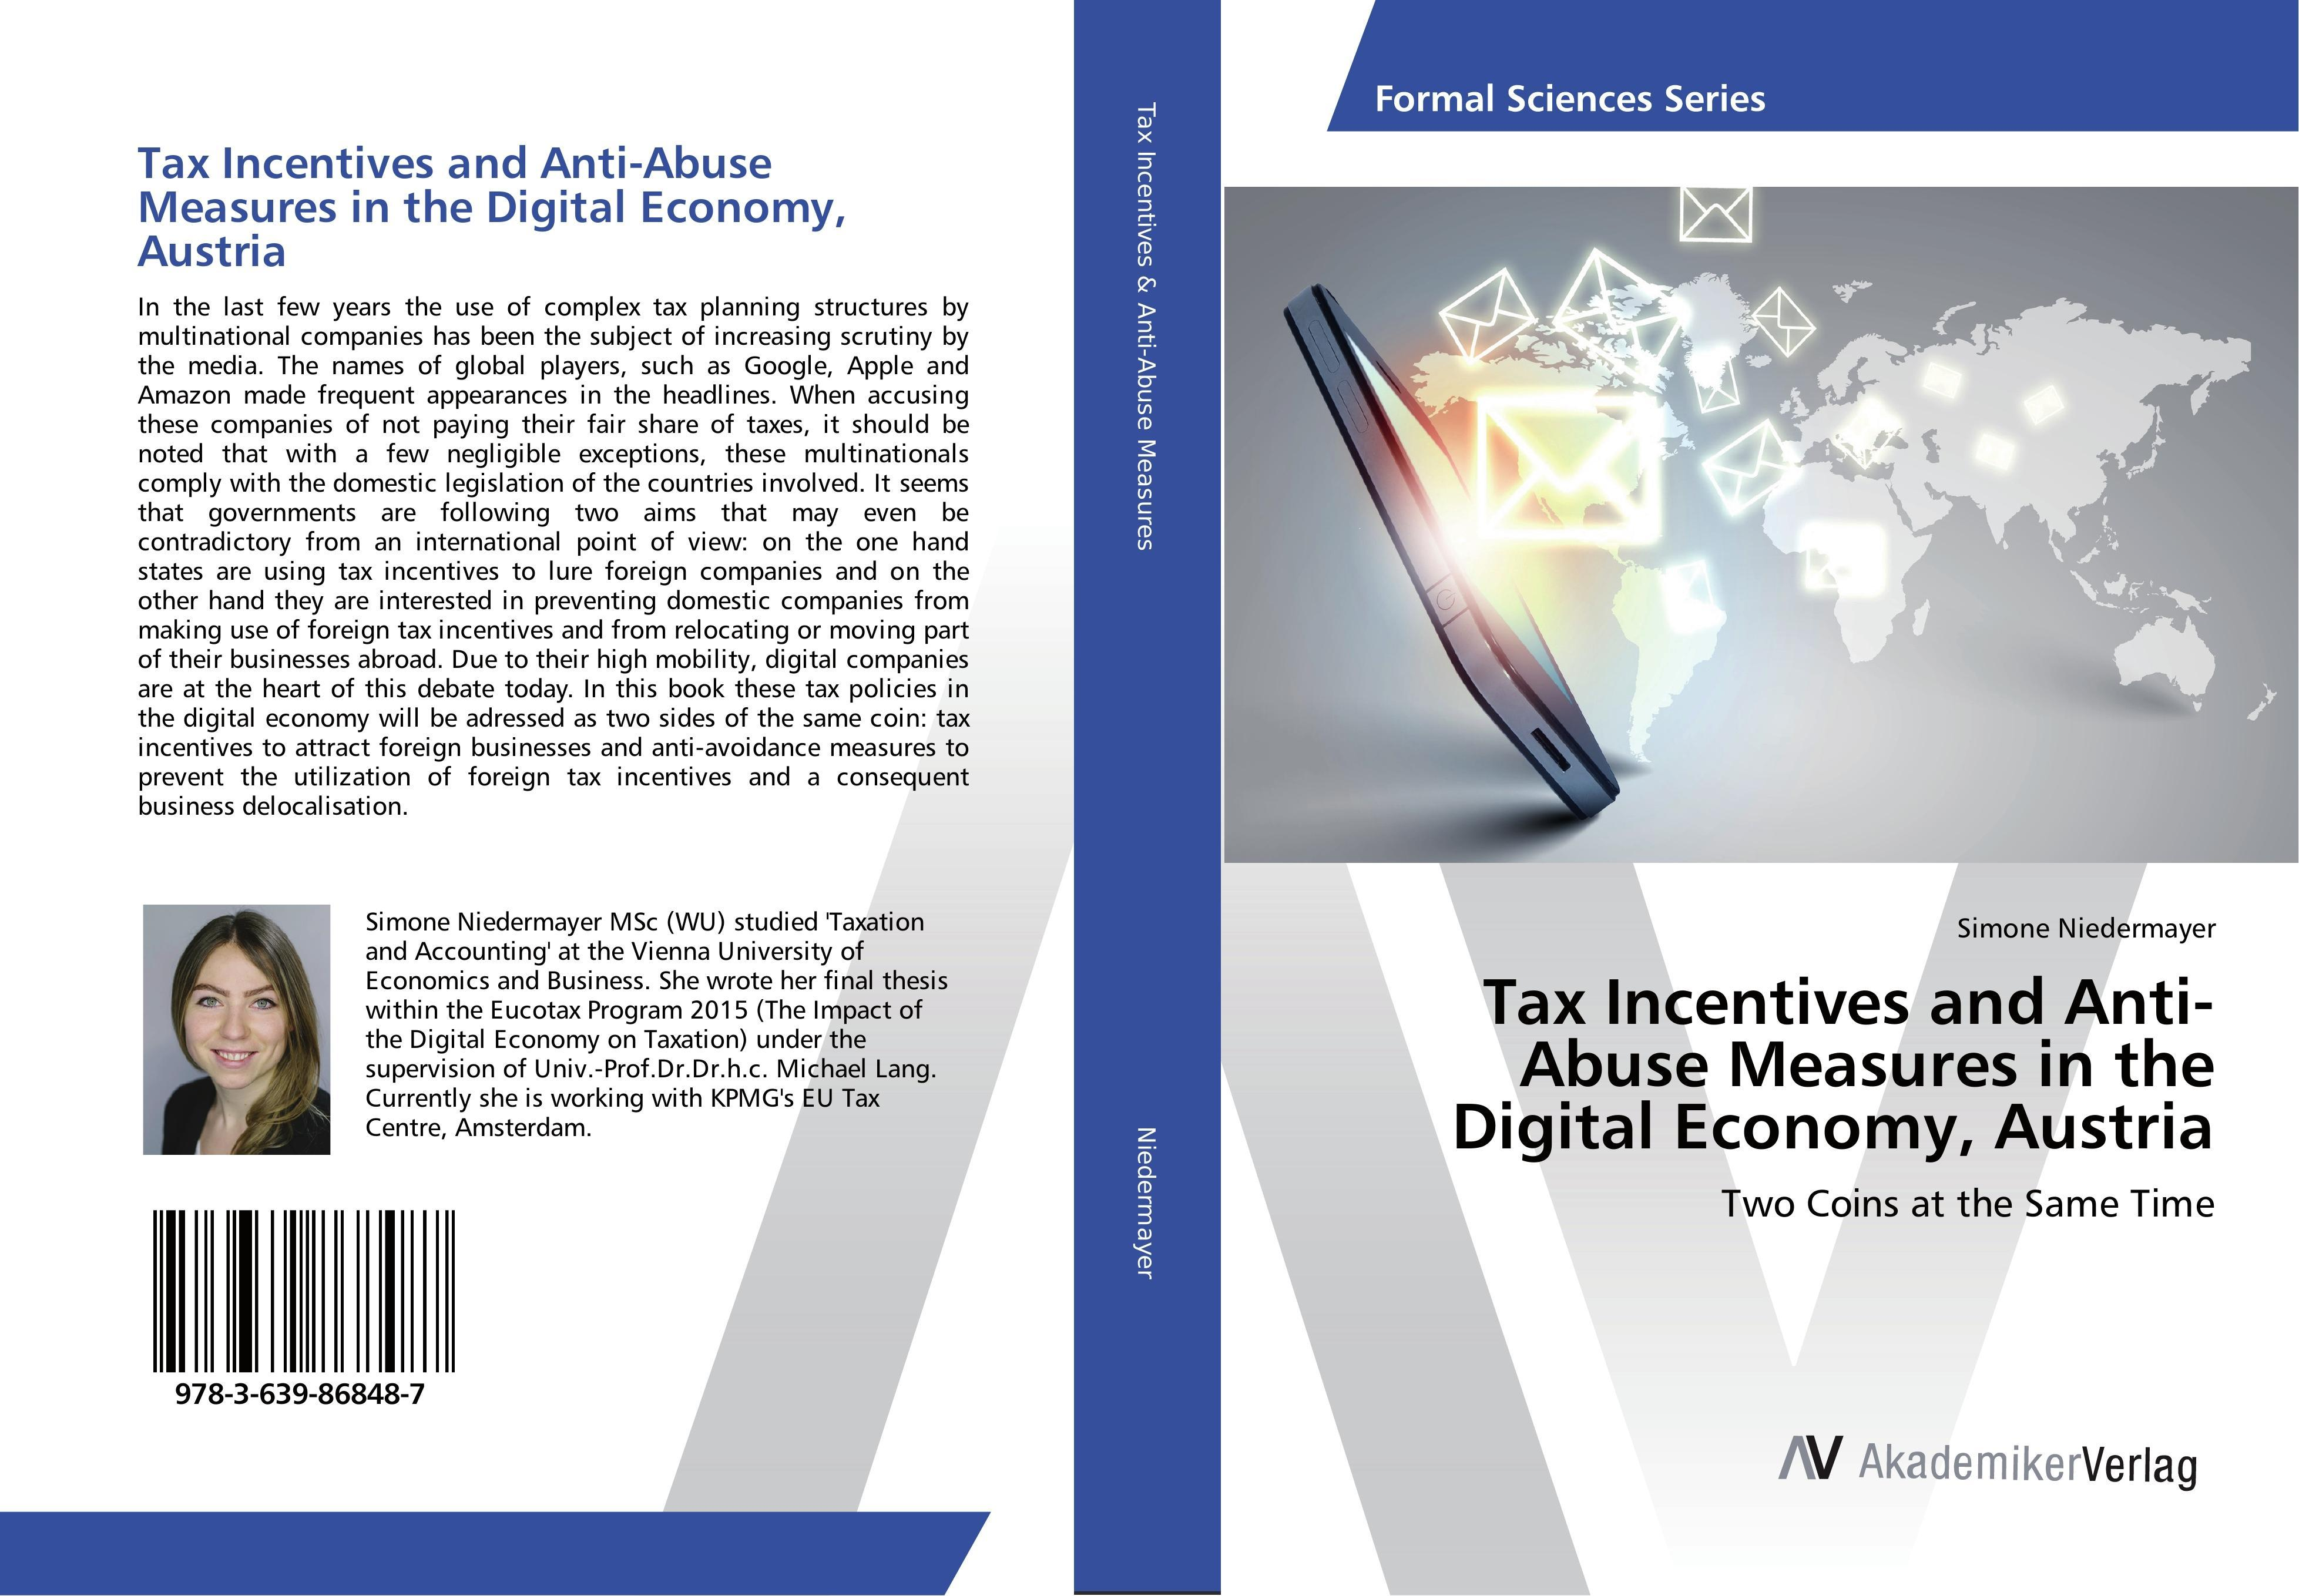 Tax Incentives and Anti-Abuse Measures in the Digital Econom ... 9783639868487